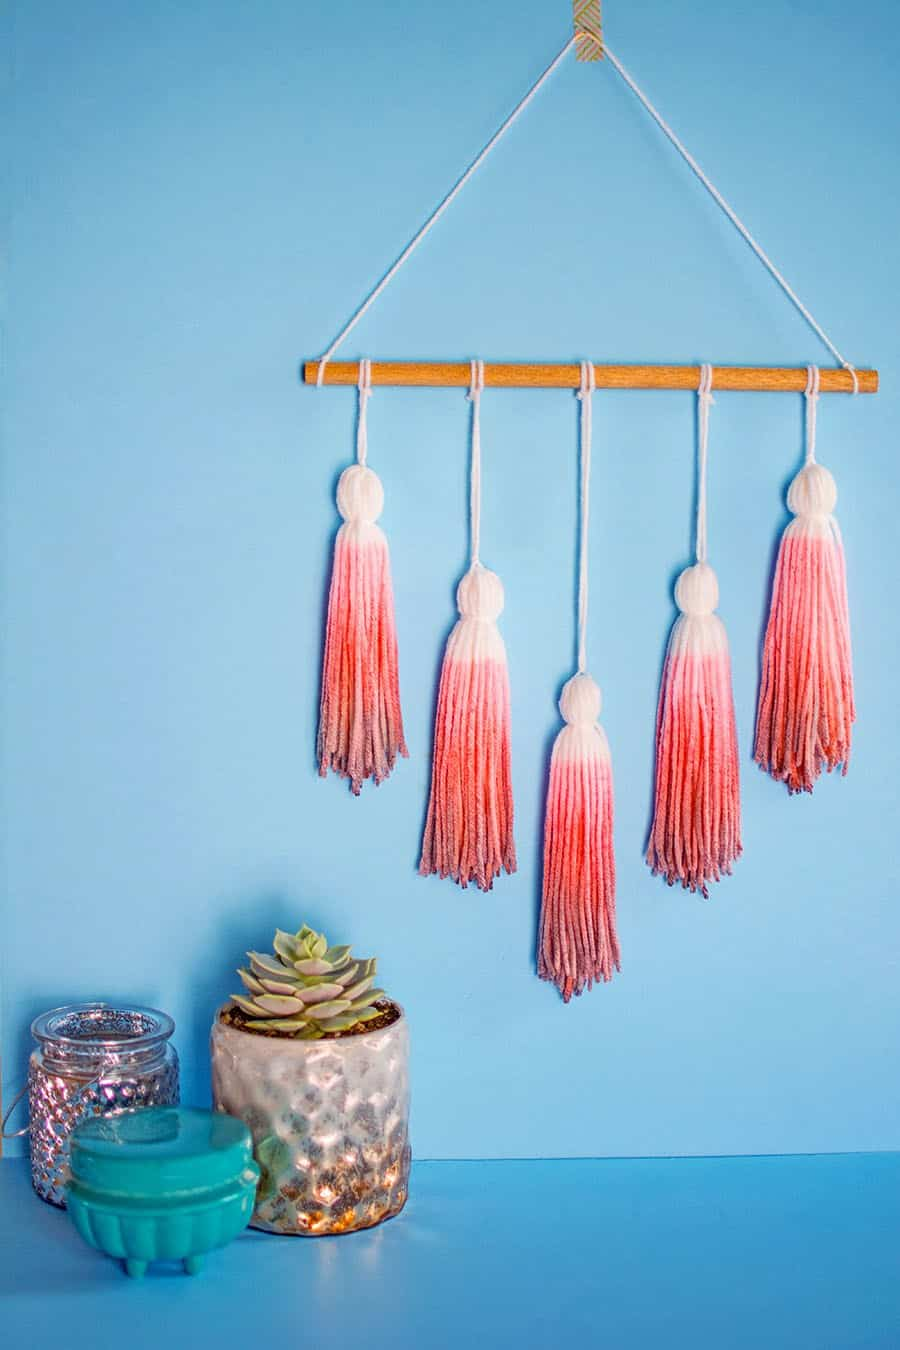 Pink ombre tassel wall mobile